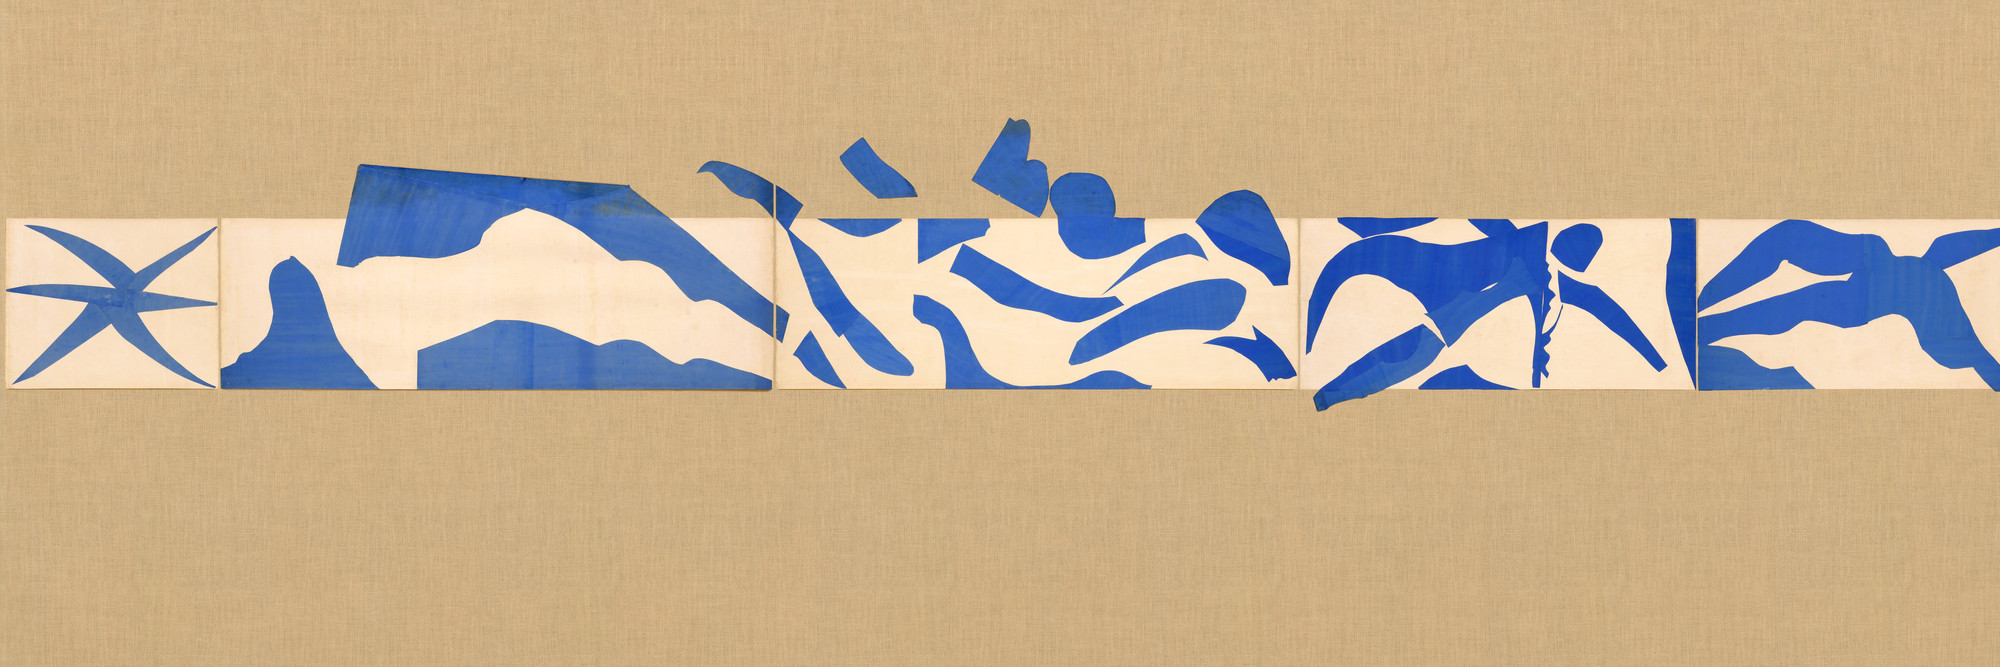 "Henri Matisse. The Swimming Pool, Maquette for ceramic (realized 1999 and 2005). 1952. Gouache on paper, cut and pasted, on painted paper, overall 73"" × 53' 11"" (185.4 × 1643.3 cm). Installed as nine panels in two parts on burlap-covered walls 11' 4"" (345.4 cm) high. Frieze installed at a height of 5' 5"" (165 cm). Mrs. Bernard F. Gimbel Fund. © 2019 Succession H. Matisse/Artists Rights Society (ARS), New York"